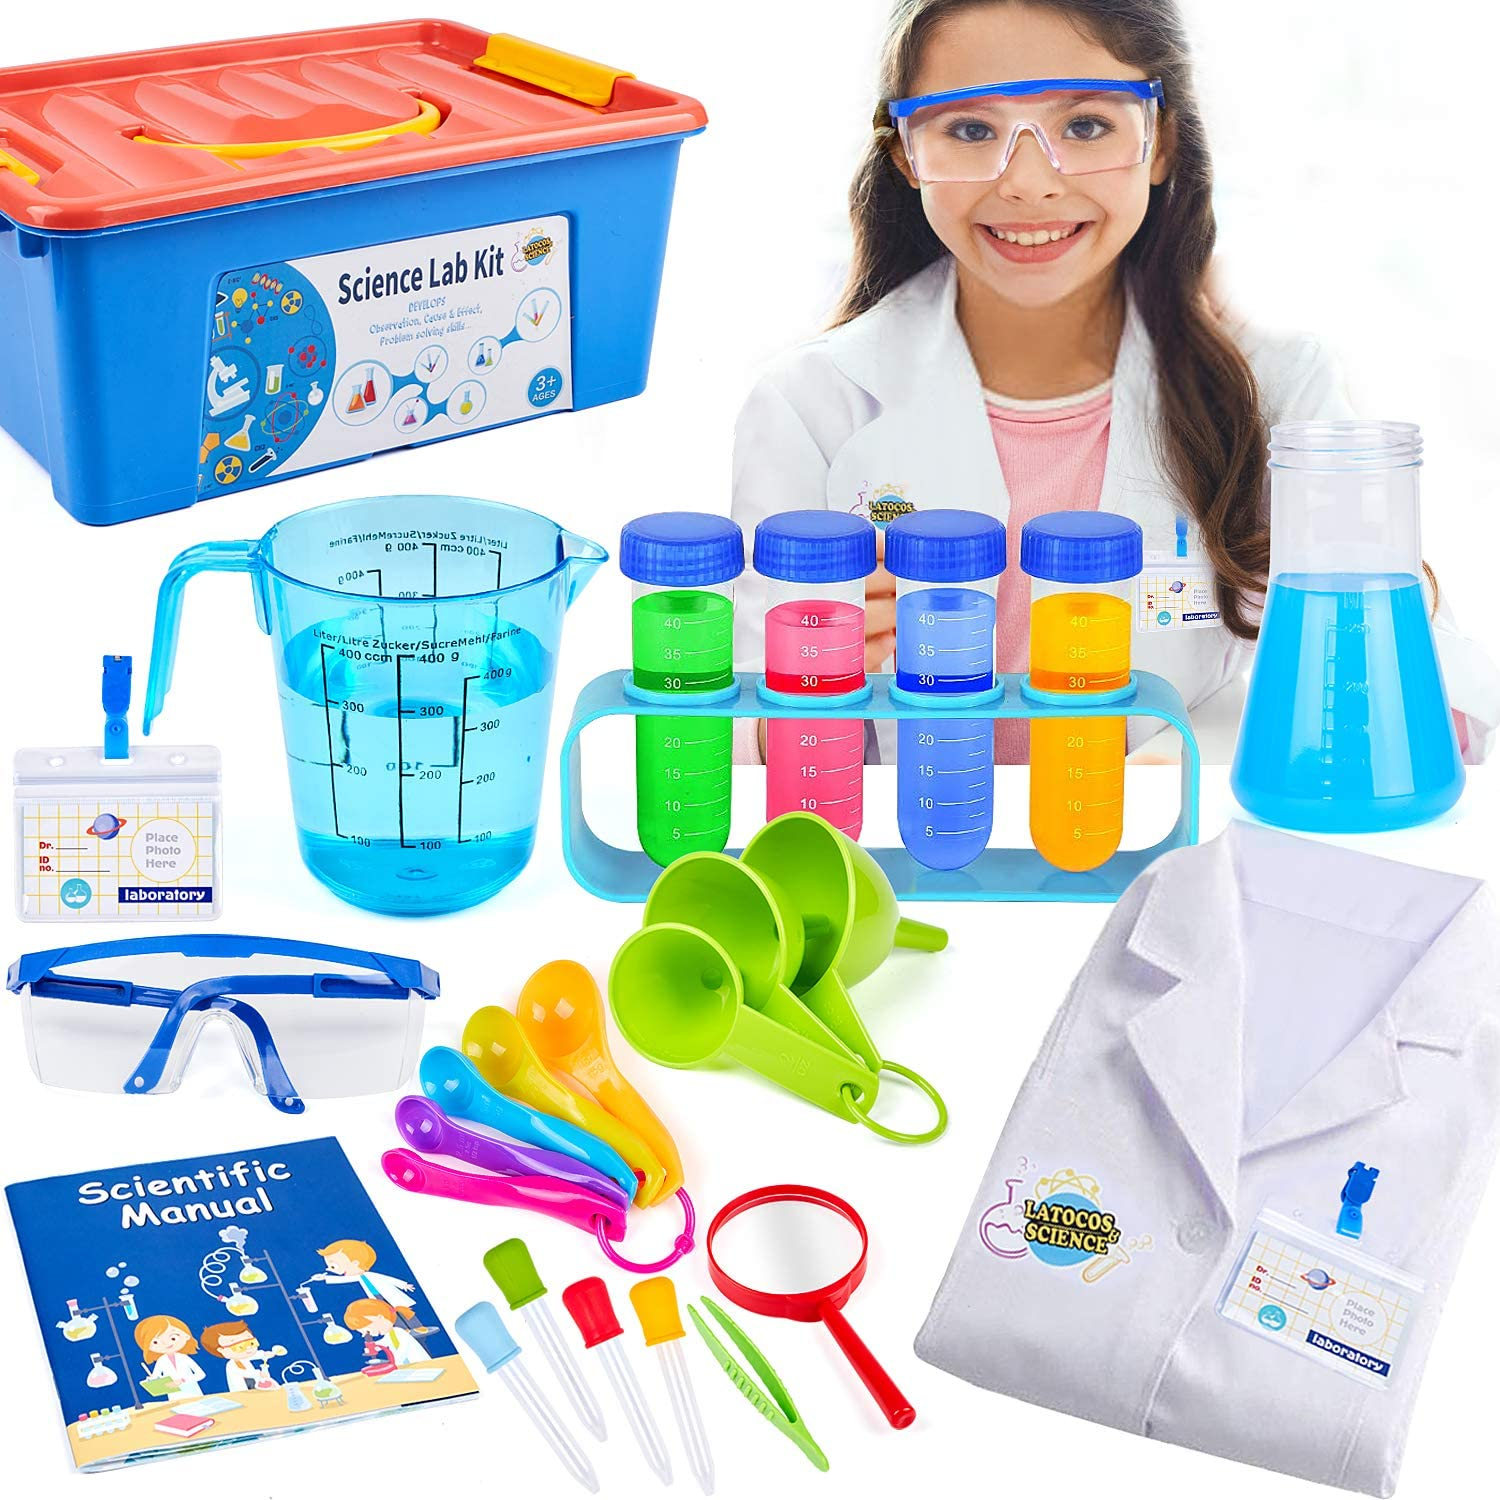 Science Kit with Lab Coat Science Experiment Scientist Costume Dress Up Role Play Toys Set Birthday Gift for Kids Girls Boys 3-11Years Old